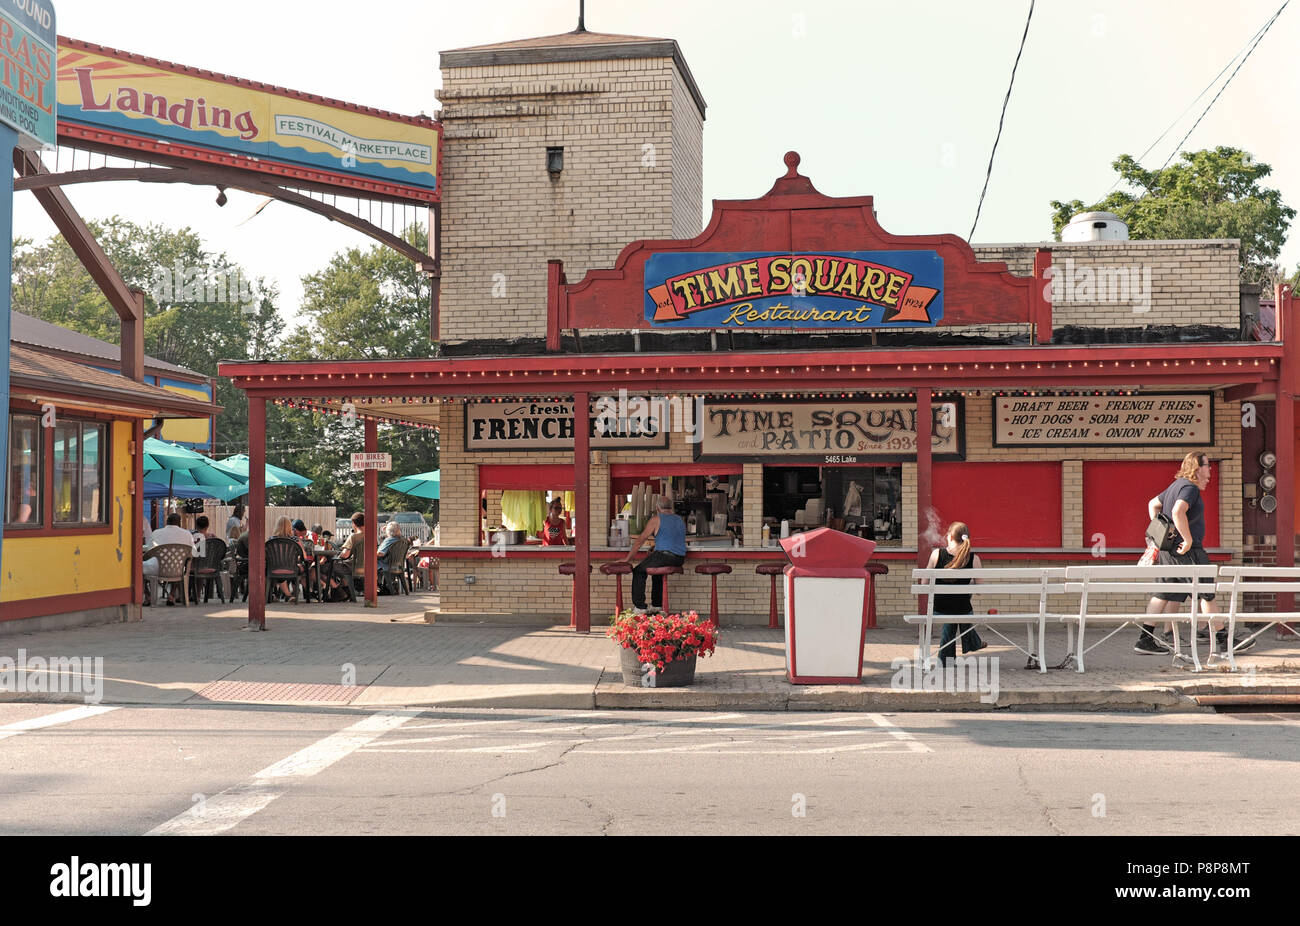 Old-school resort area of Geneva-on-the-Lake strip includes the Times Square eatery, a stalwart establishment in this popular summer destination. - Stock Image